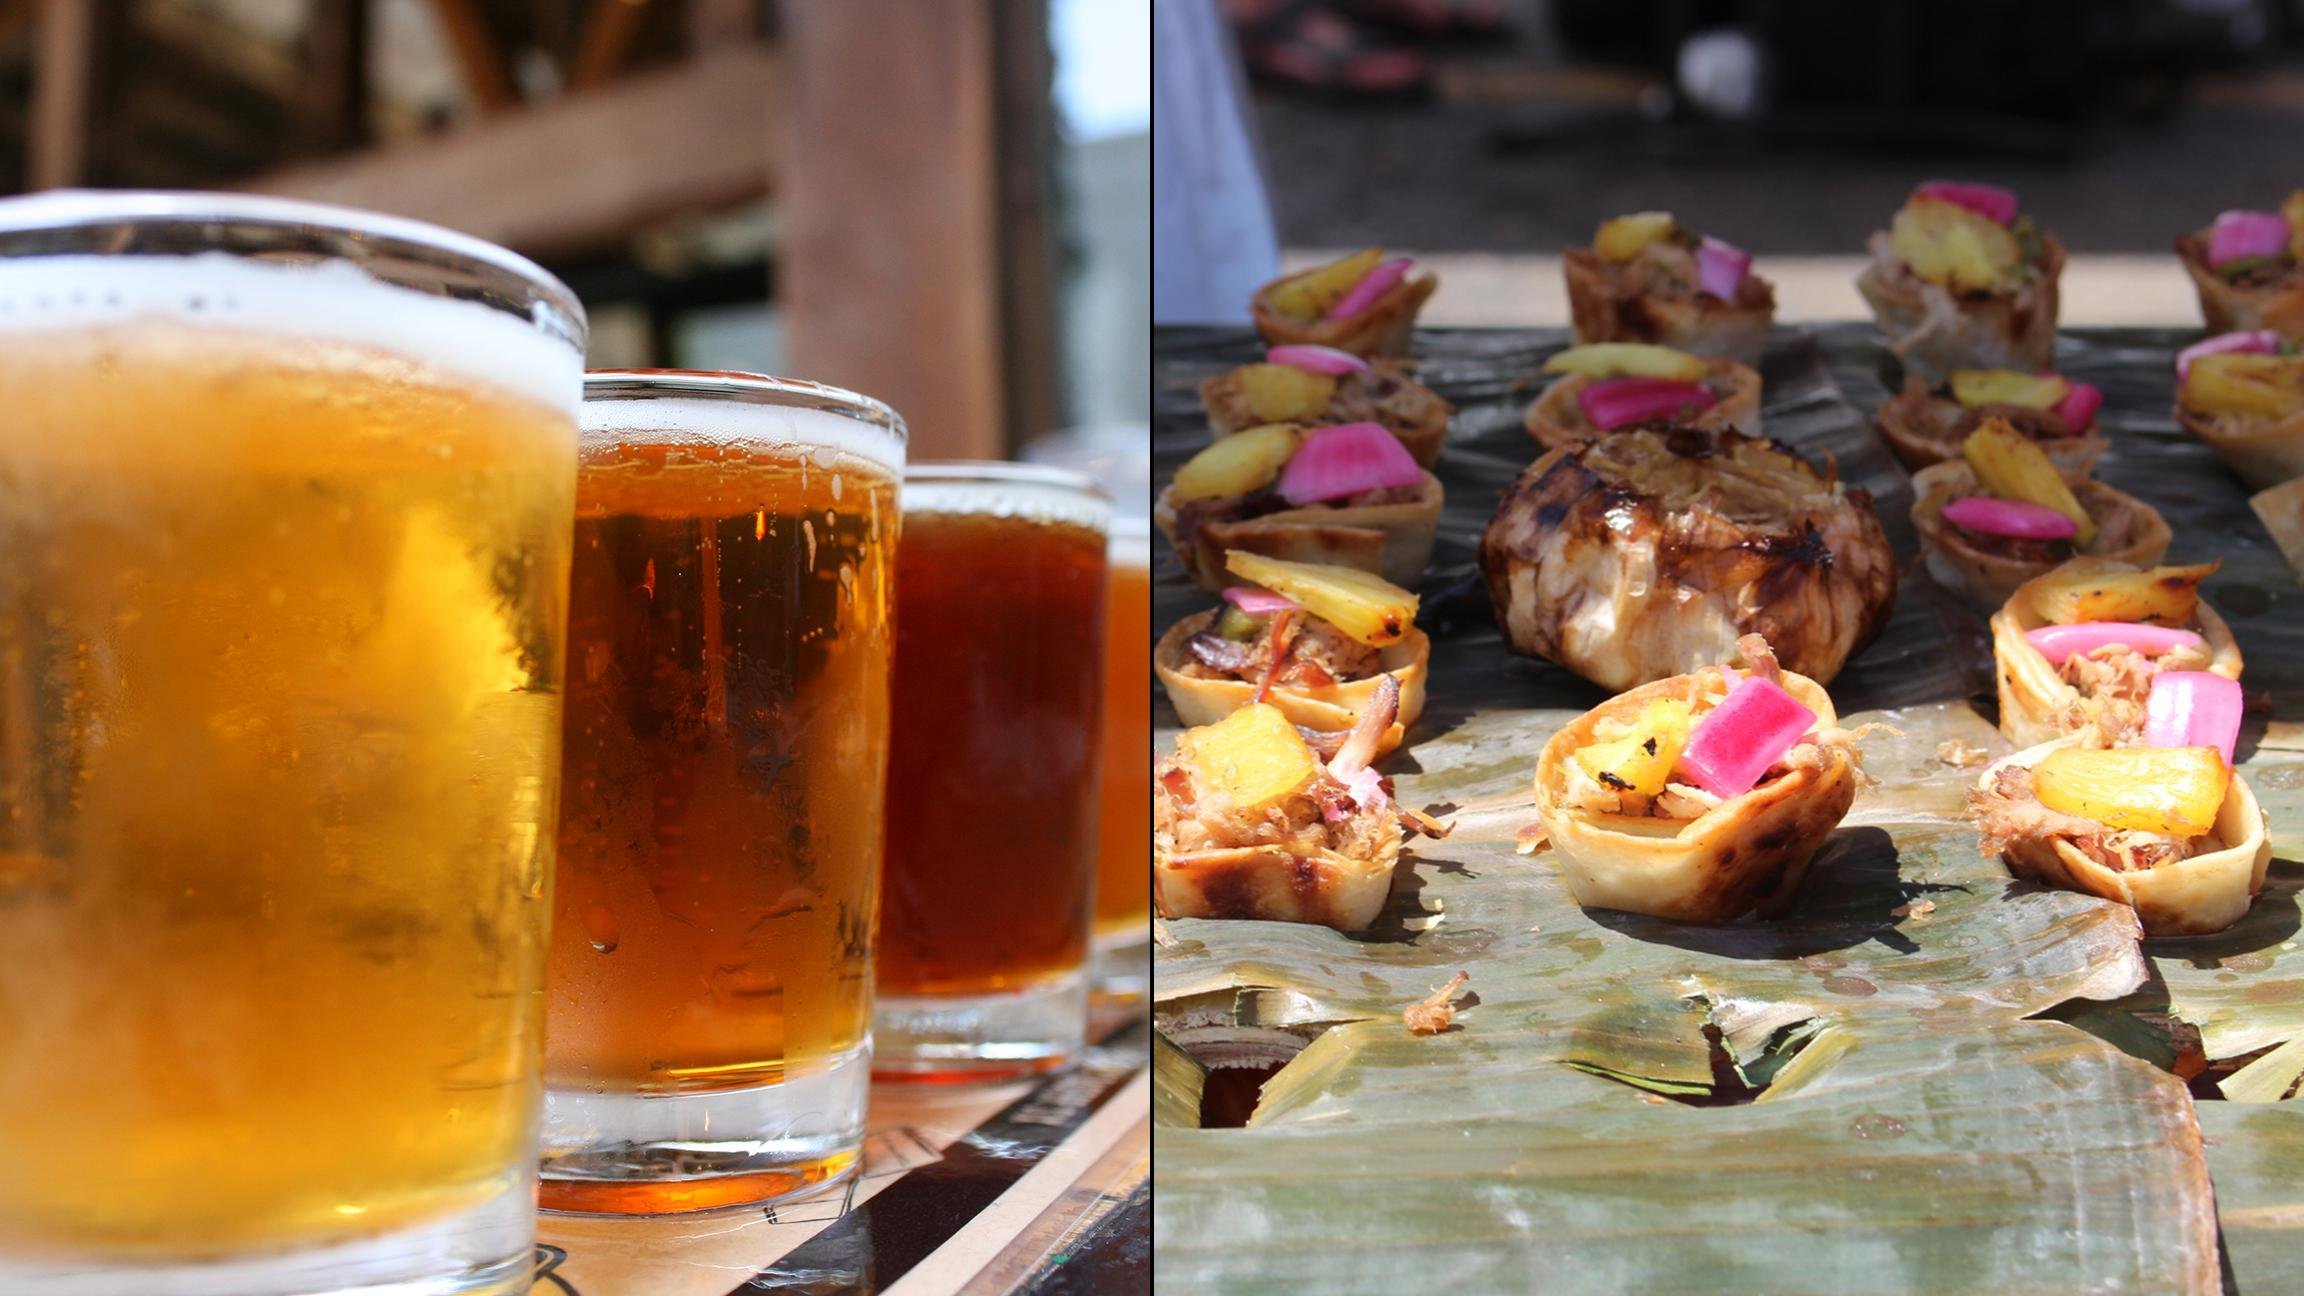 Beer and barbecue pairings are on the menu in Old Irving Park on Saturday. (Photos, from left: Quinn Dombrowski / Flickr; Beer and BBQ Challenge)